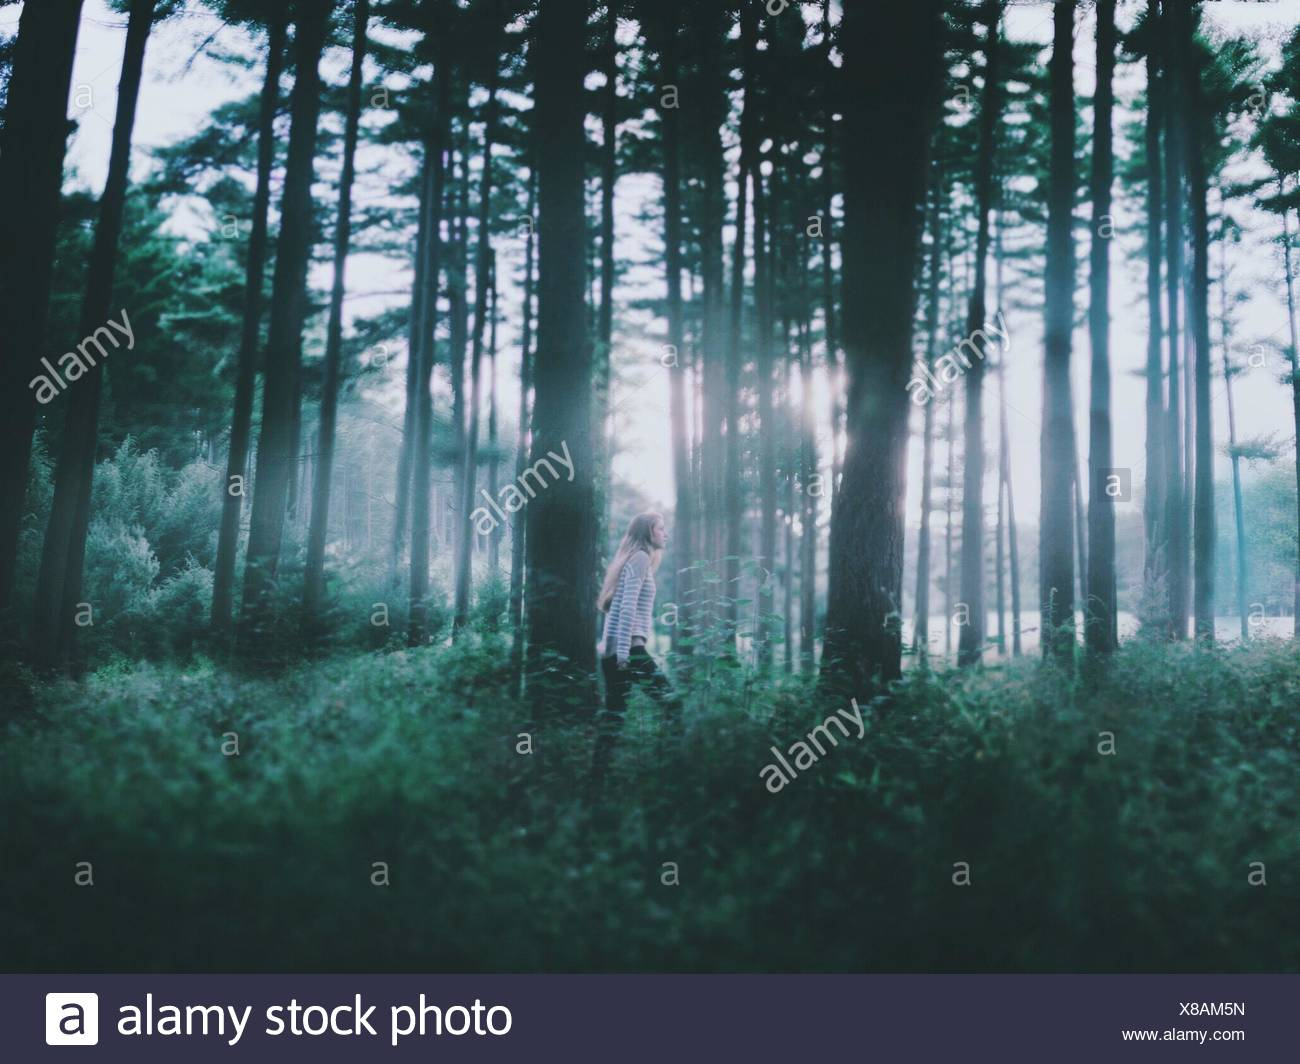 Side view of a young woman walking through a forest Stock Photo